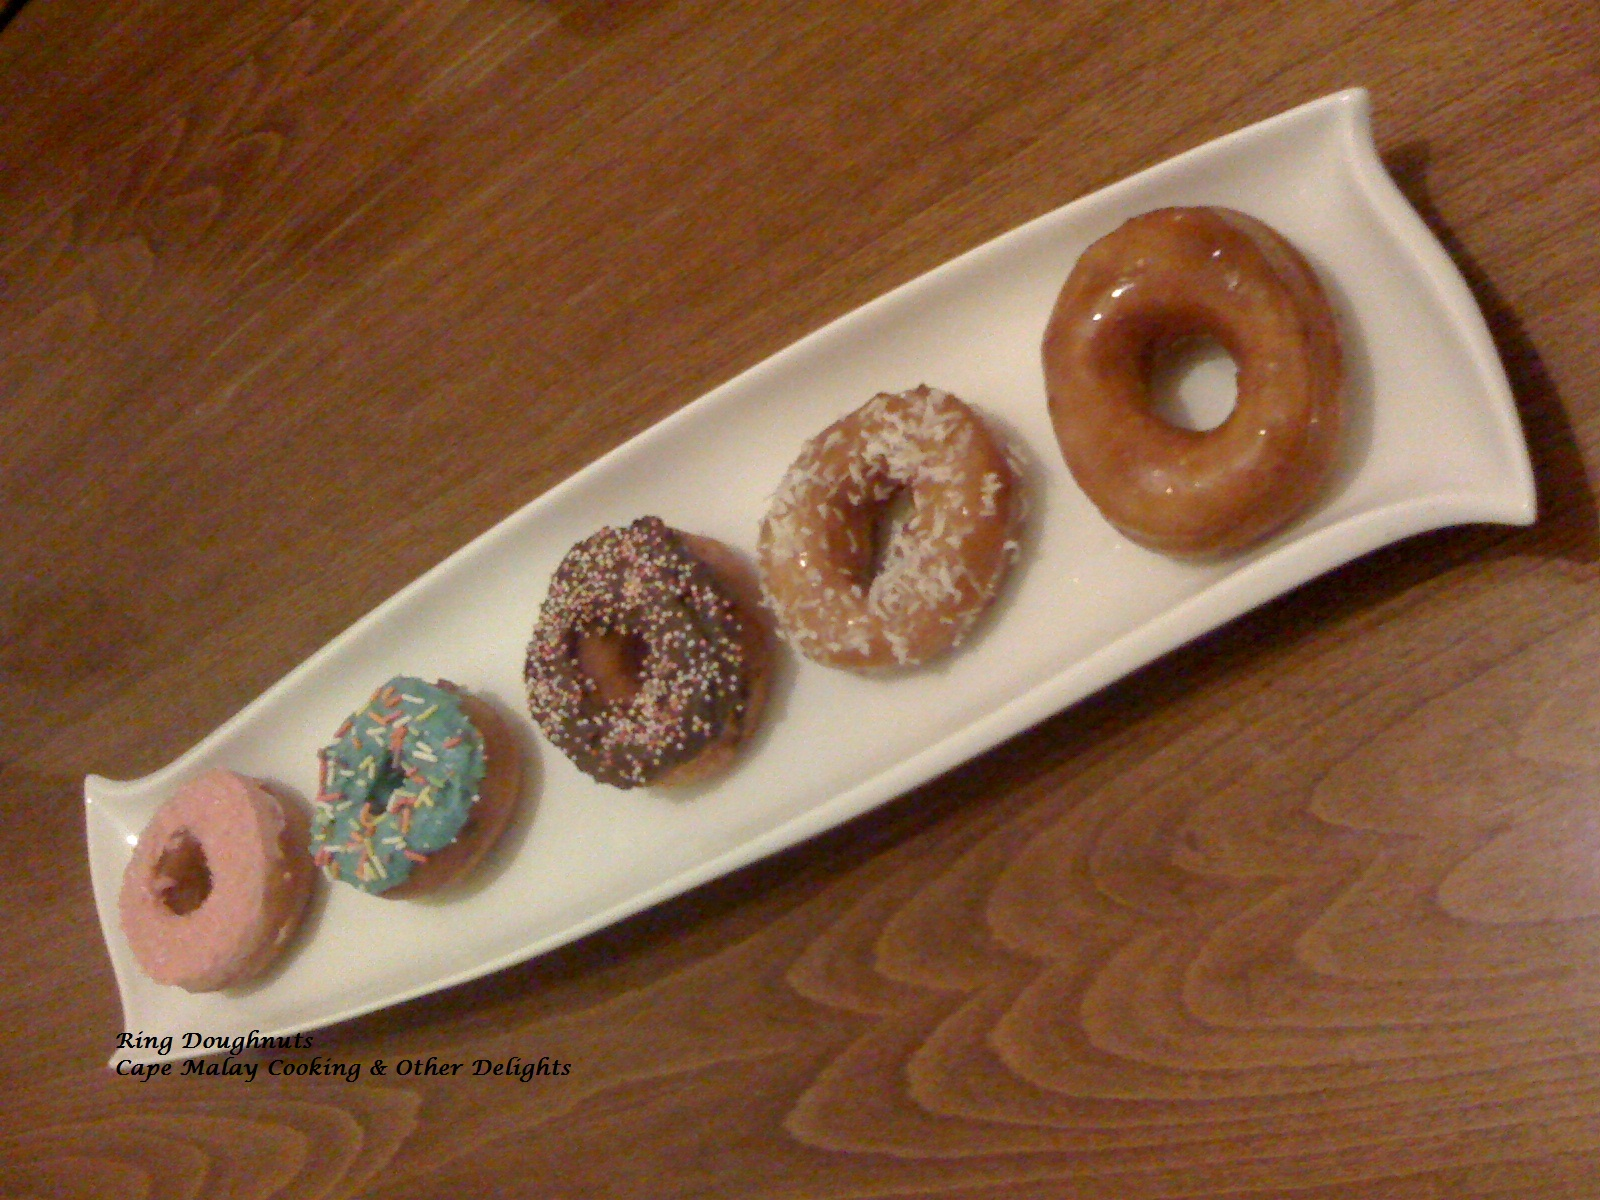 Cinnamon Ring Doughnuts   Cape Malay Cooking & Other Delights - Salwaa Smith